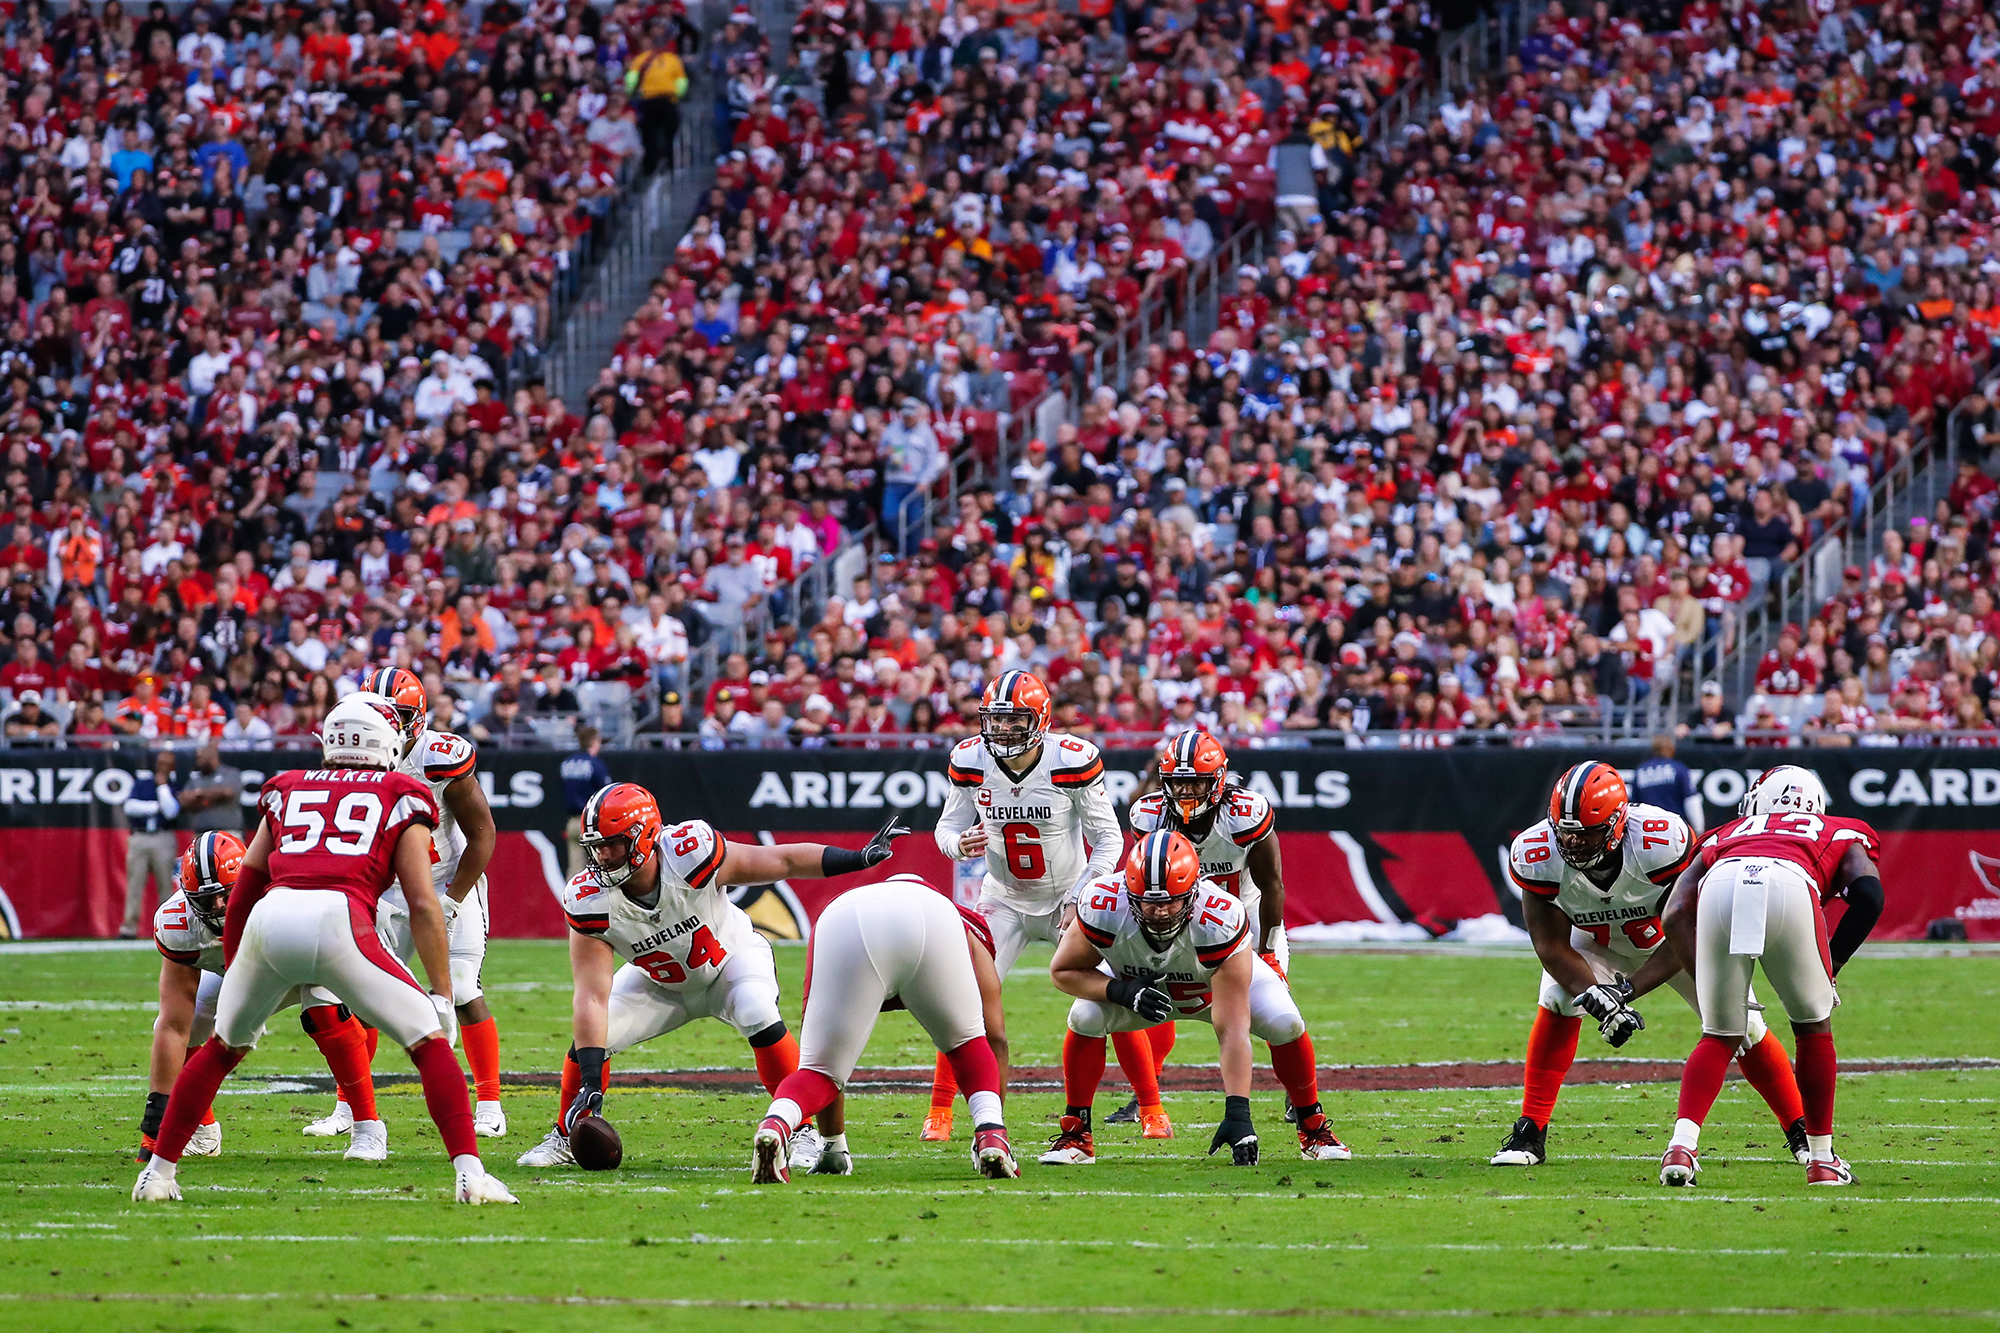 Among Arizona's sports team in the biggest four professional leagues – the NHL, NBA, NFL and MLB – the Cardinals are worth the most, a figure aided when crowds are allowed inside State Farm Stadium. (Photo by Kevin Abele/Icon Sportswire via Getty Images)